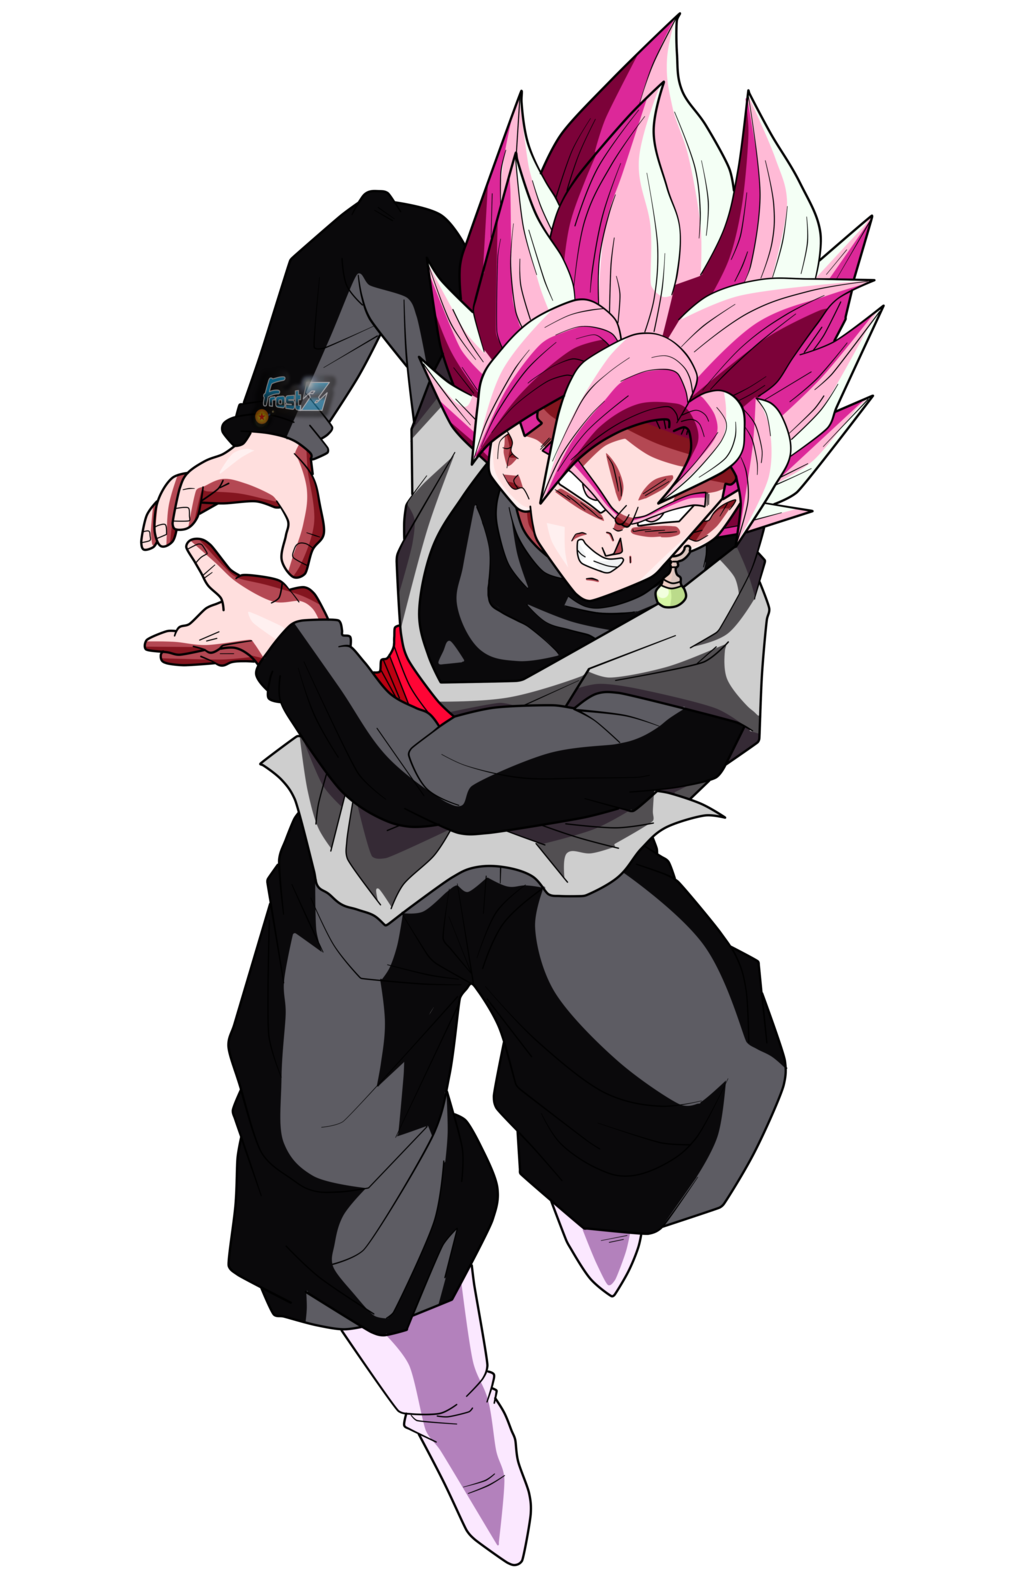 Goku black rose png. Dragon ball z pinterest